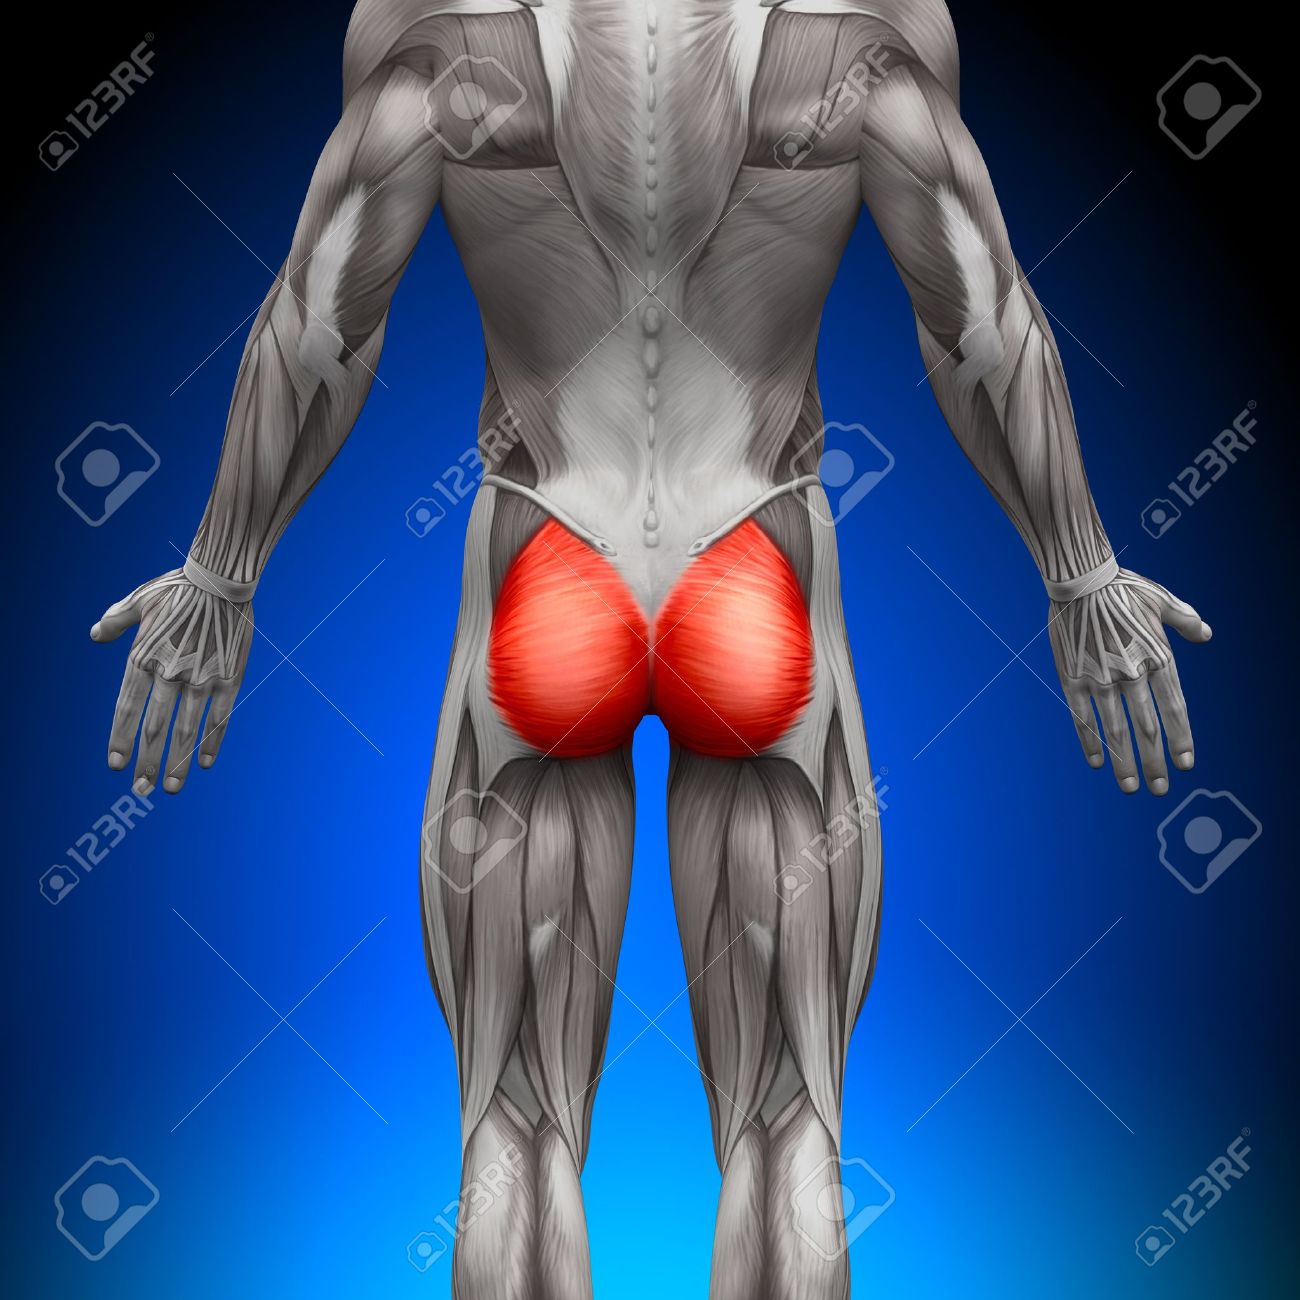 Glutes Gluteus Maximus Anatomy Muscles Stock Photo, Picture And ...